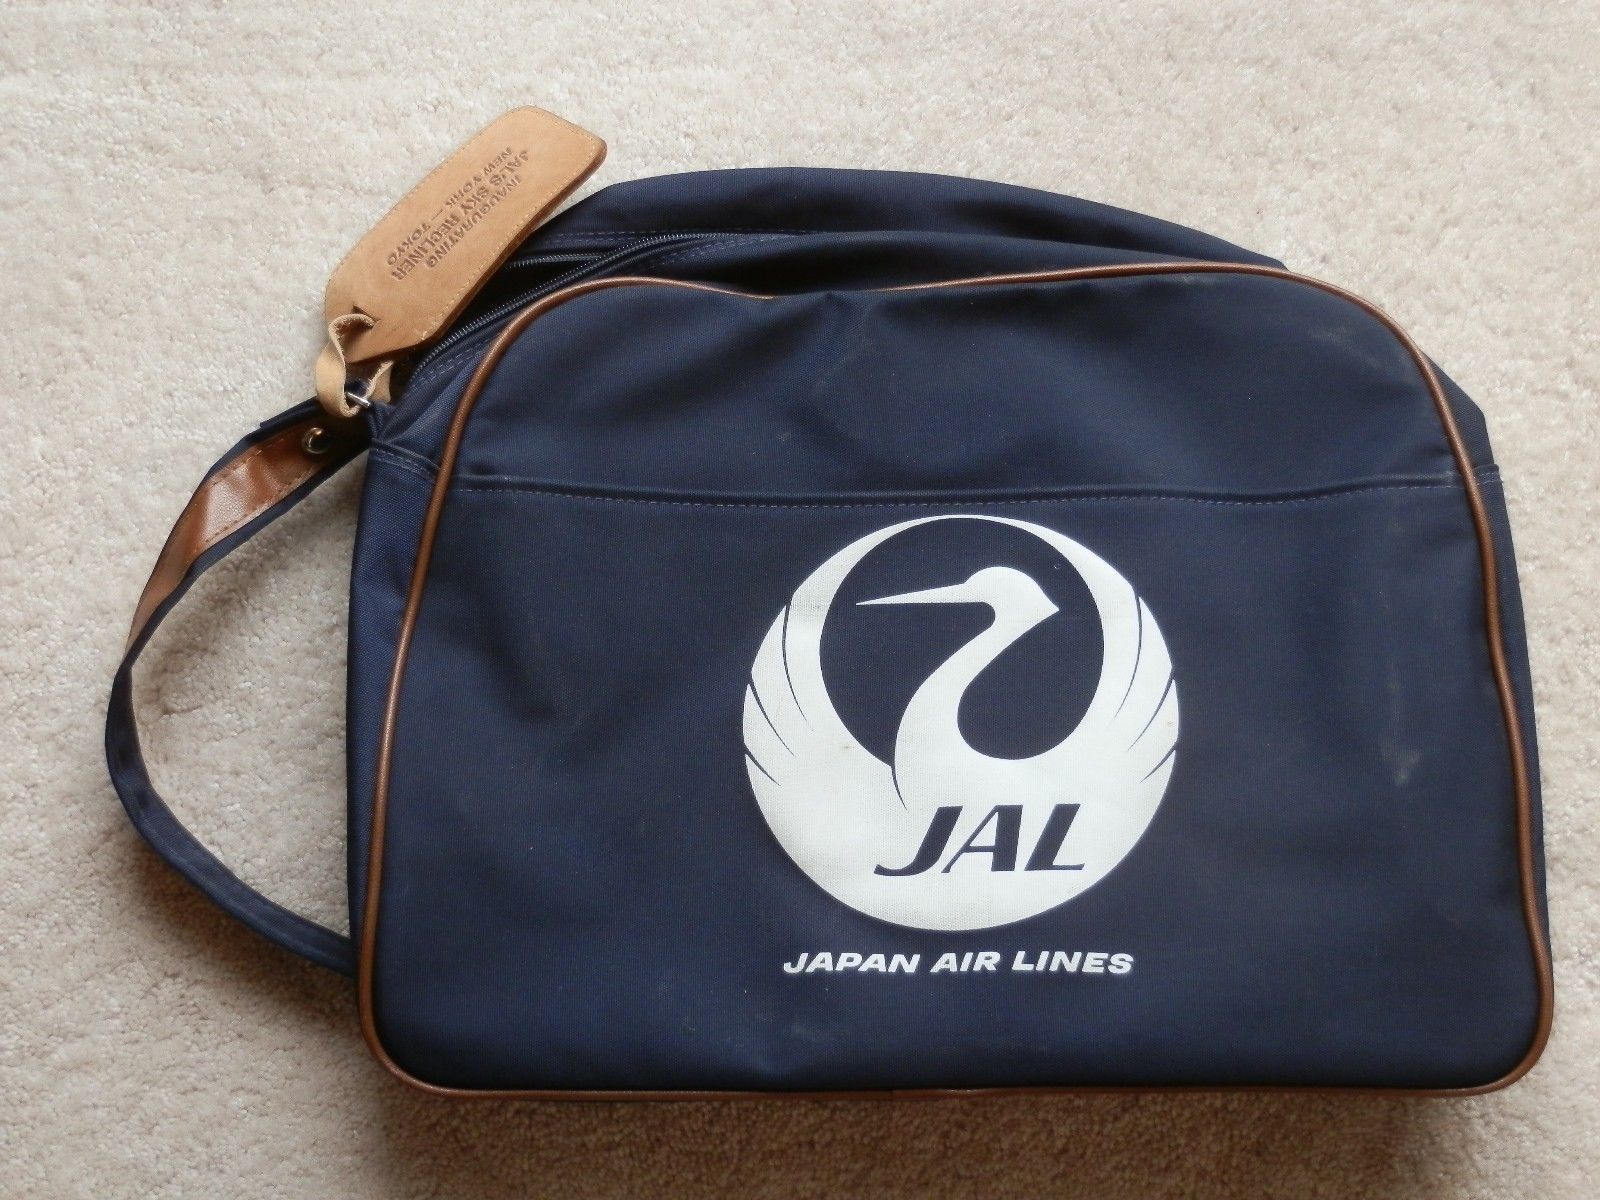 A vintage Japan Airlines satchel. Image from eBay.